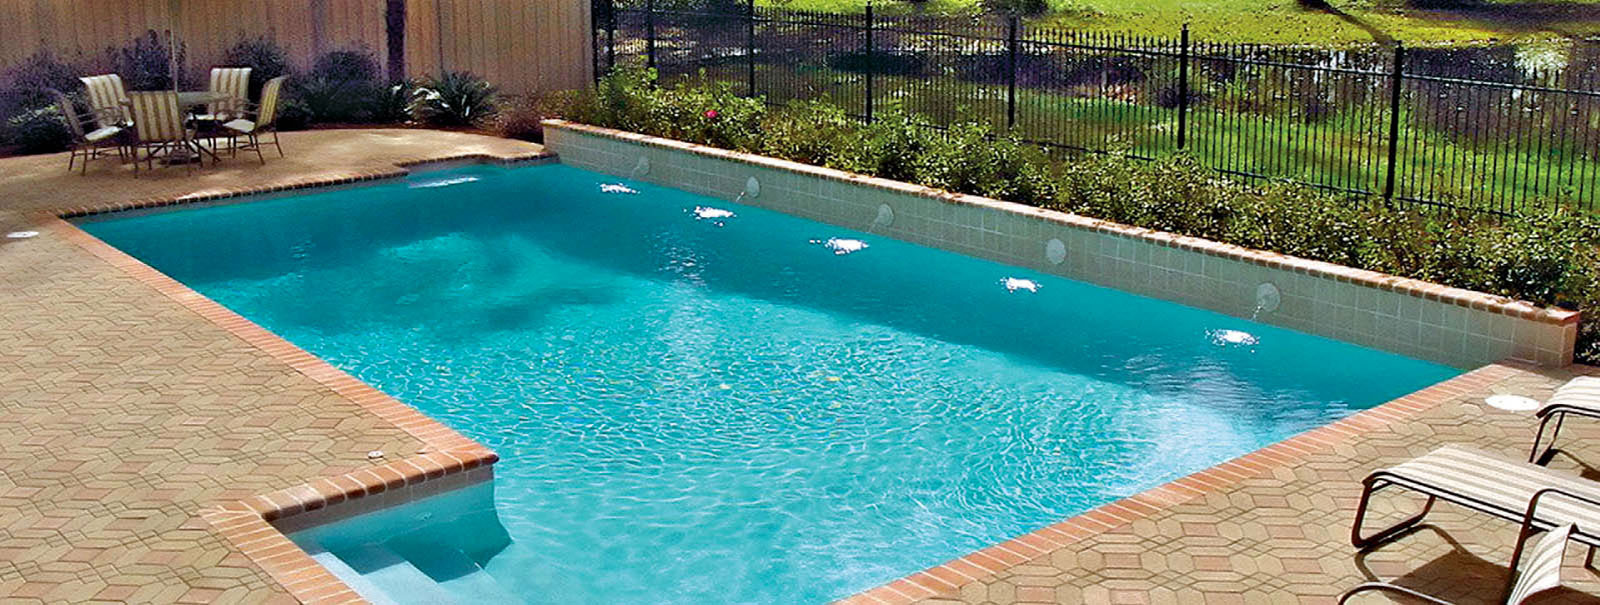 Metairie-swimming-pool2